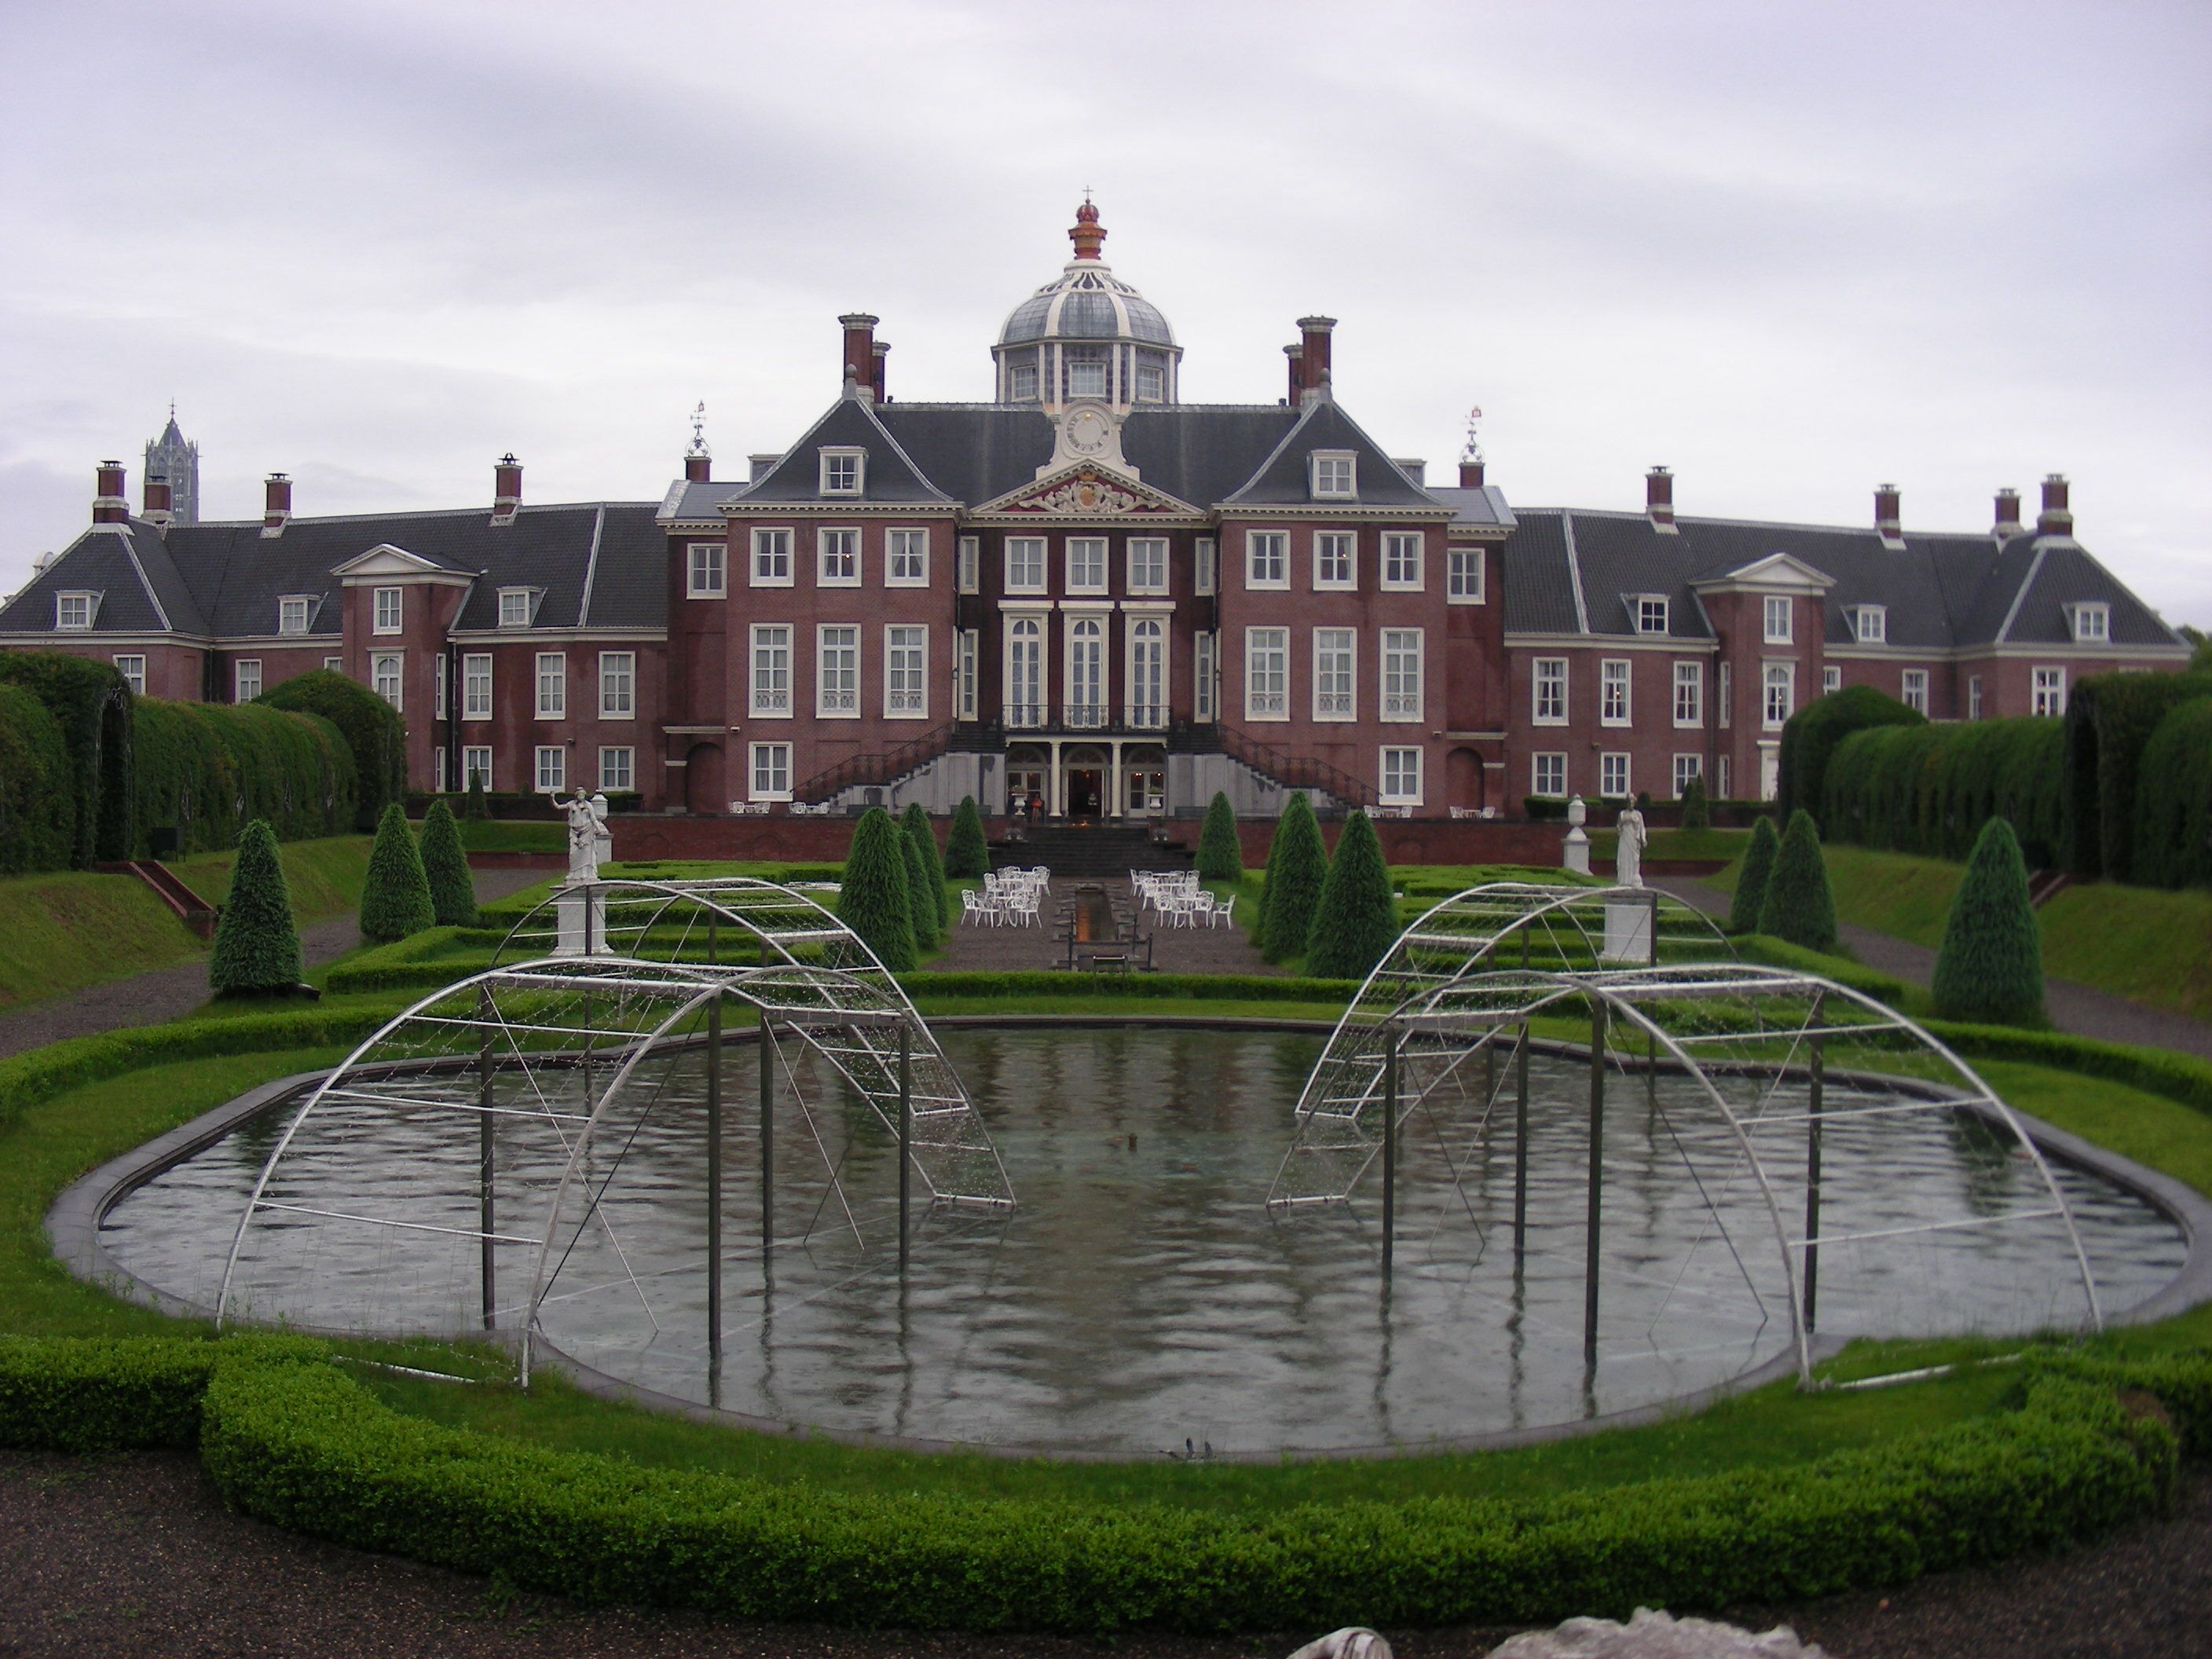 102 best castle fort palace images on pinterest castles forts huis ten bosch english house in the woods is a royal publicscrutiny Choice Image